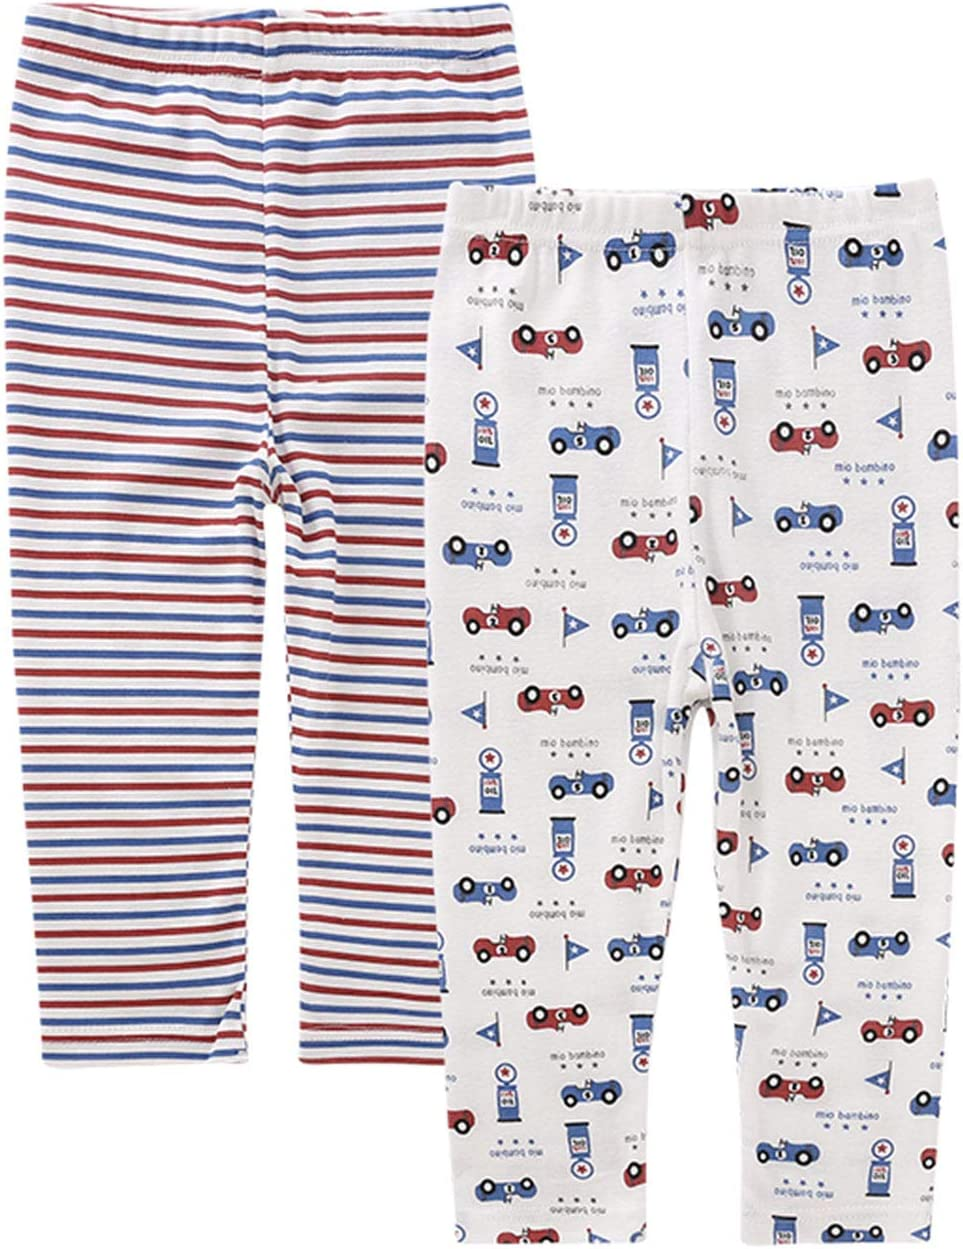 AIEOE Baby Organic Cotton Pants Soft Comfortable Cartoon Pattern Pants 2 Pack